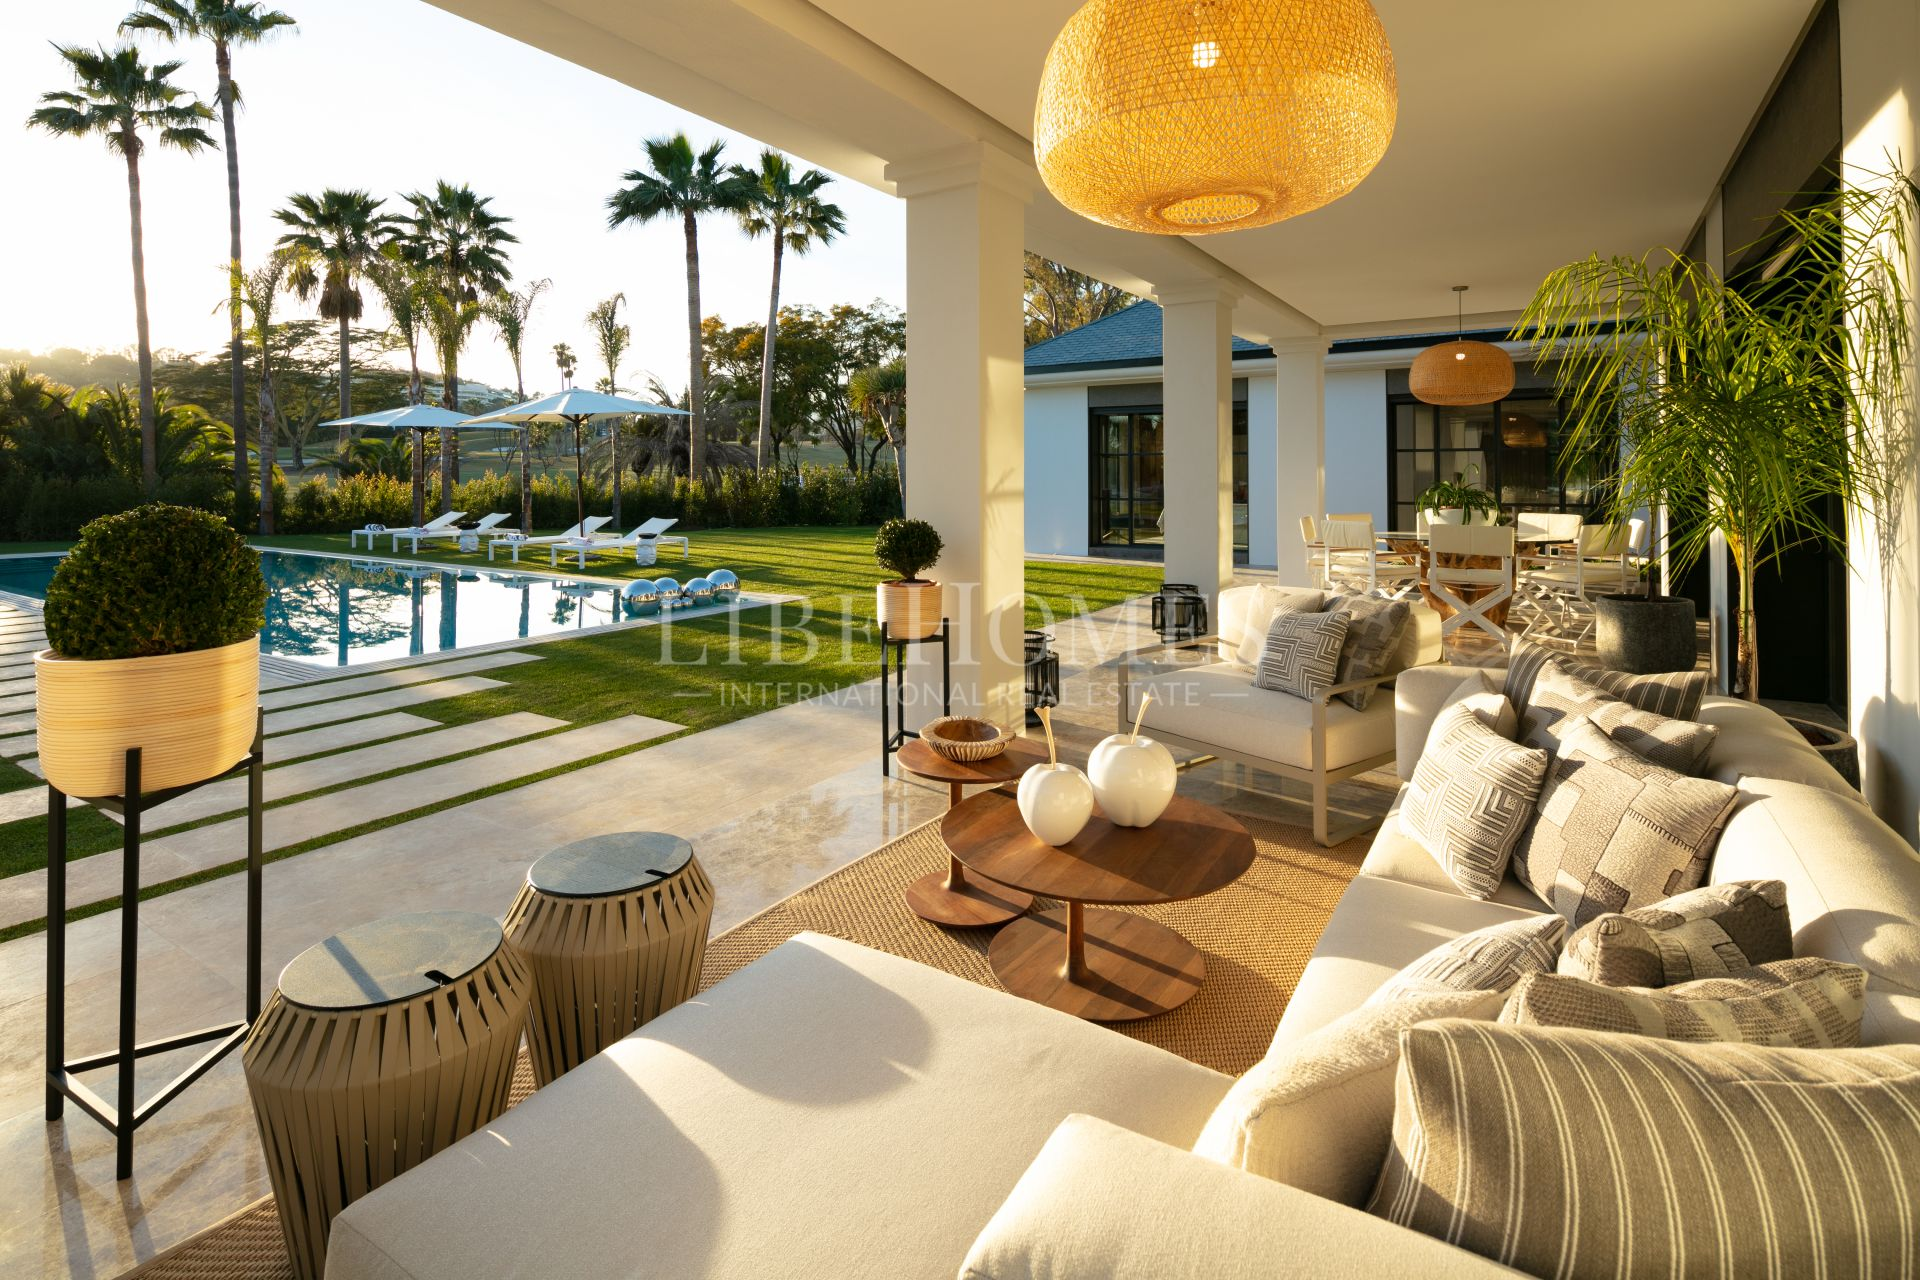 Villa for sale in Brisas del Golf, Marbella Nueva Andalucia